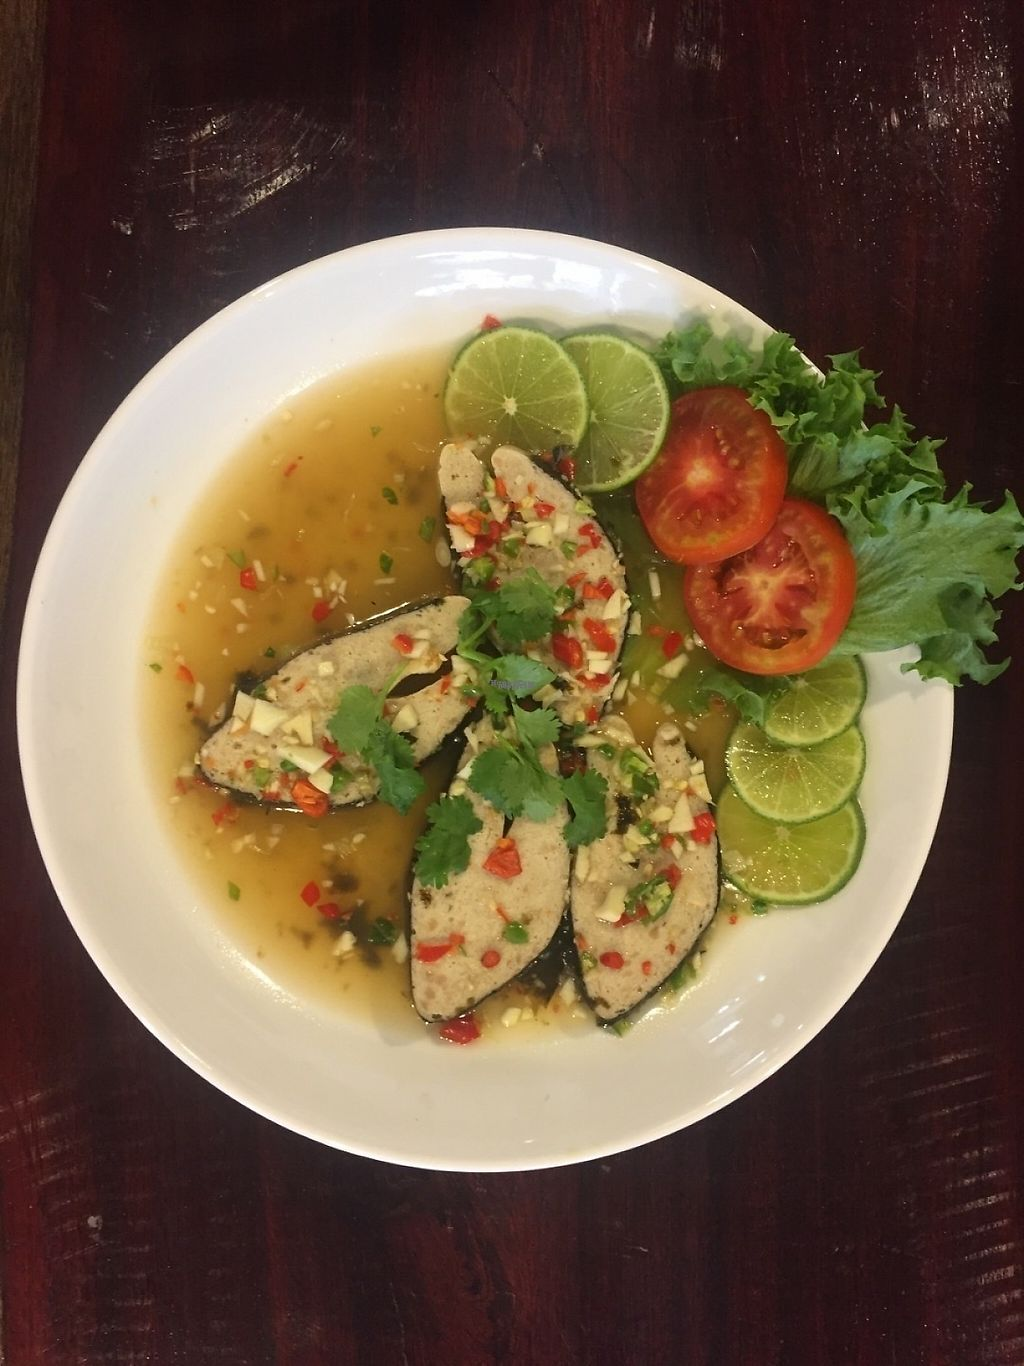 "Photo of Yo Green Restaurant  by <a href=""/members/profile/YoGreenRestaurant"">YoGreenRestaurant</a> <br/>Mock fish from soya <br/> February 26, 2017  - <a href='/contact/abuse/image/87150/230794'>Report</a>"